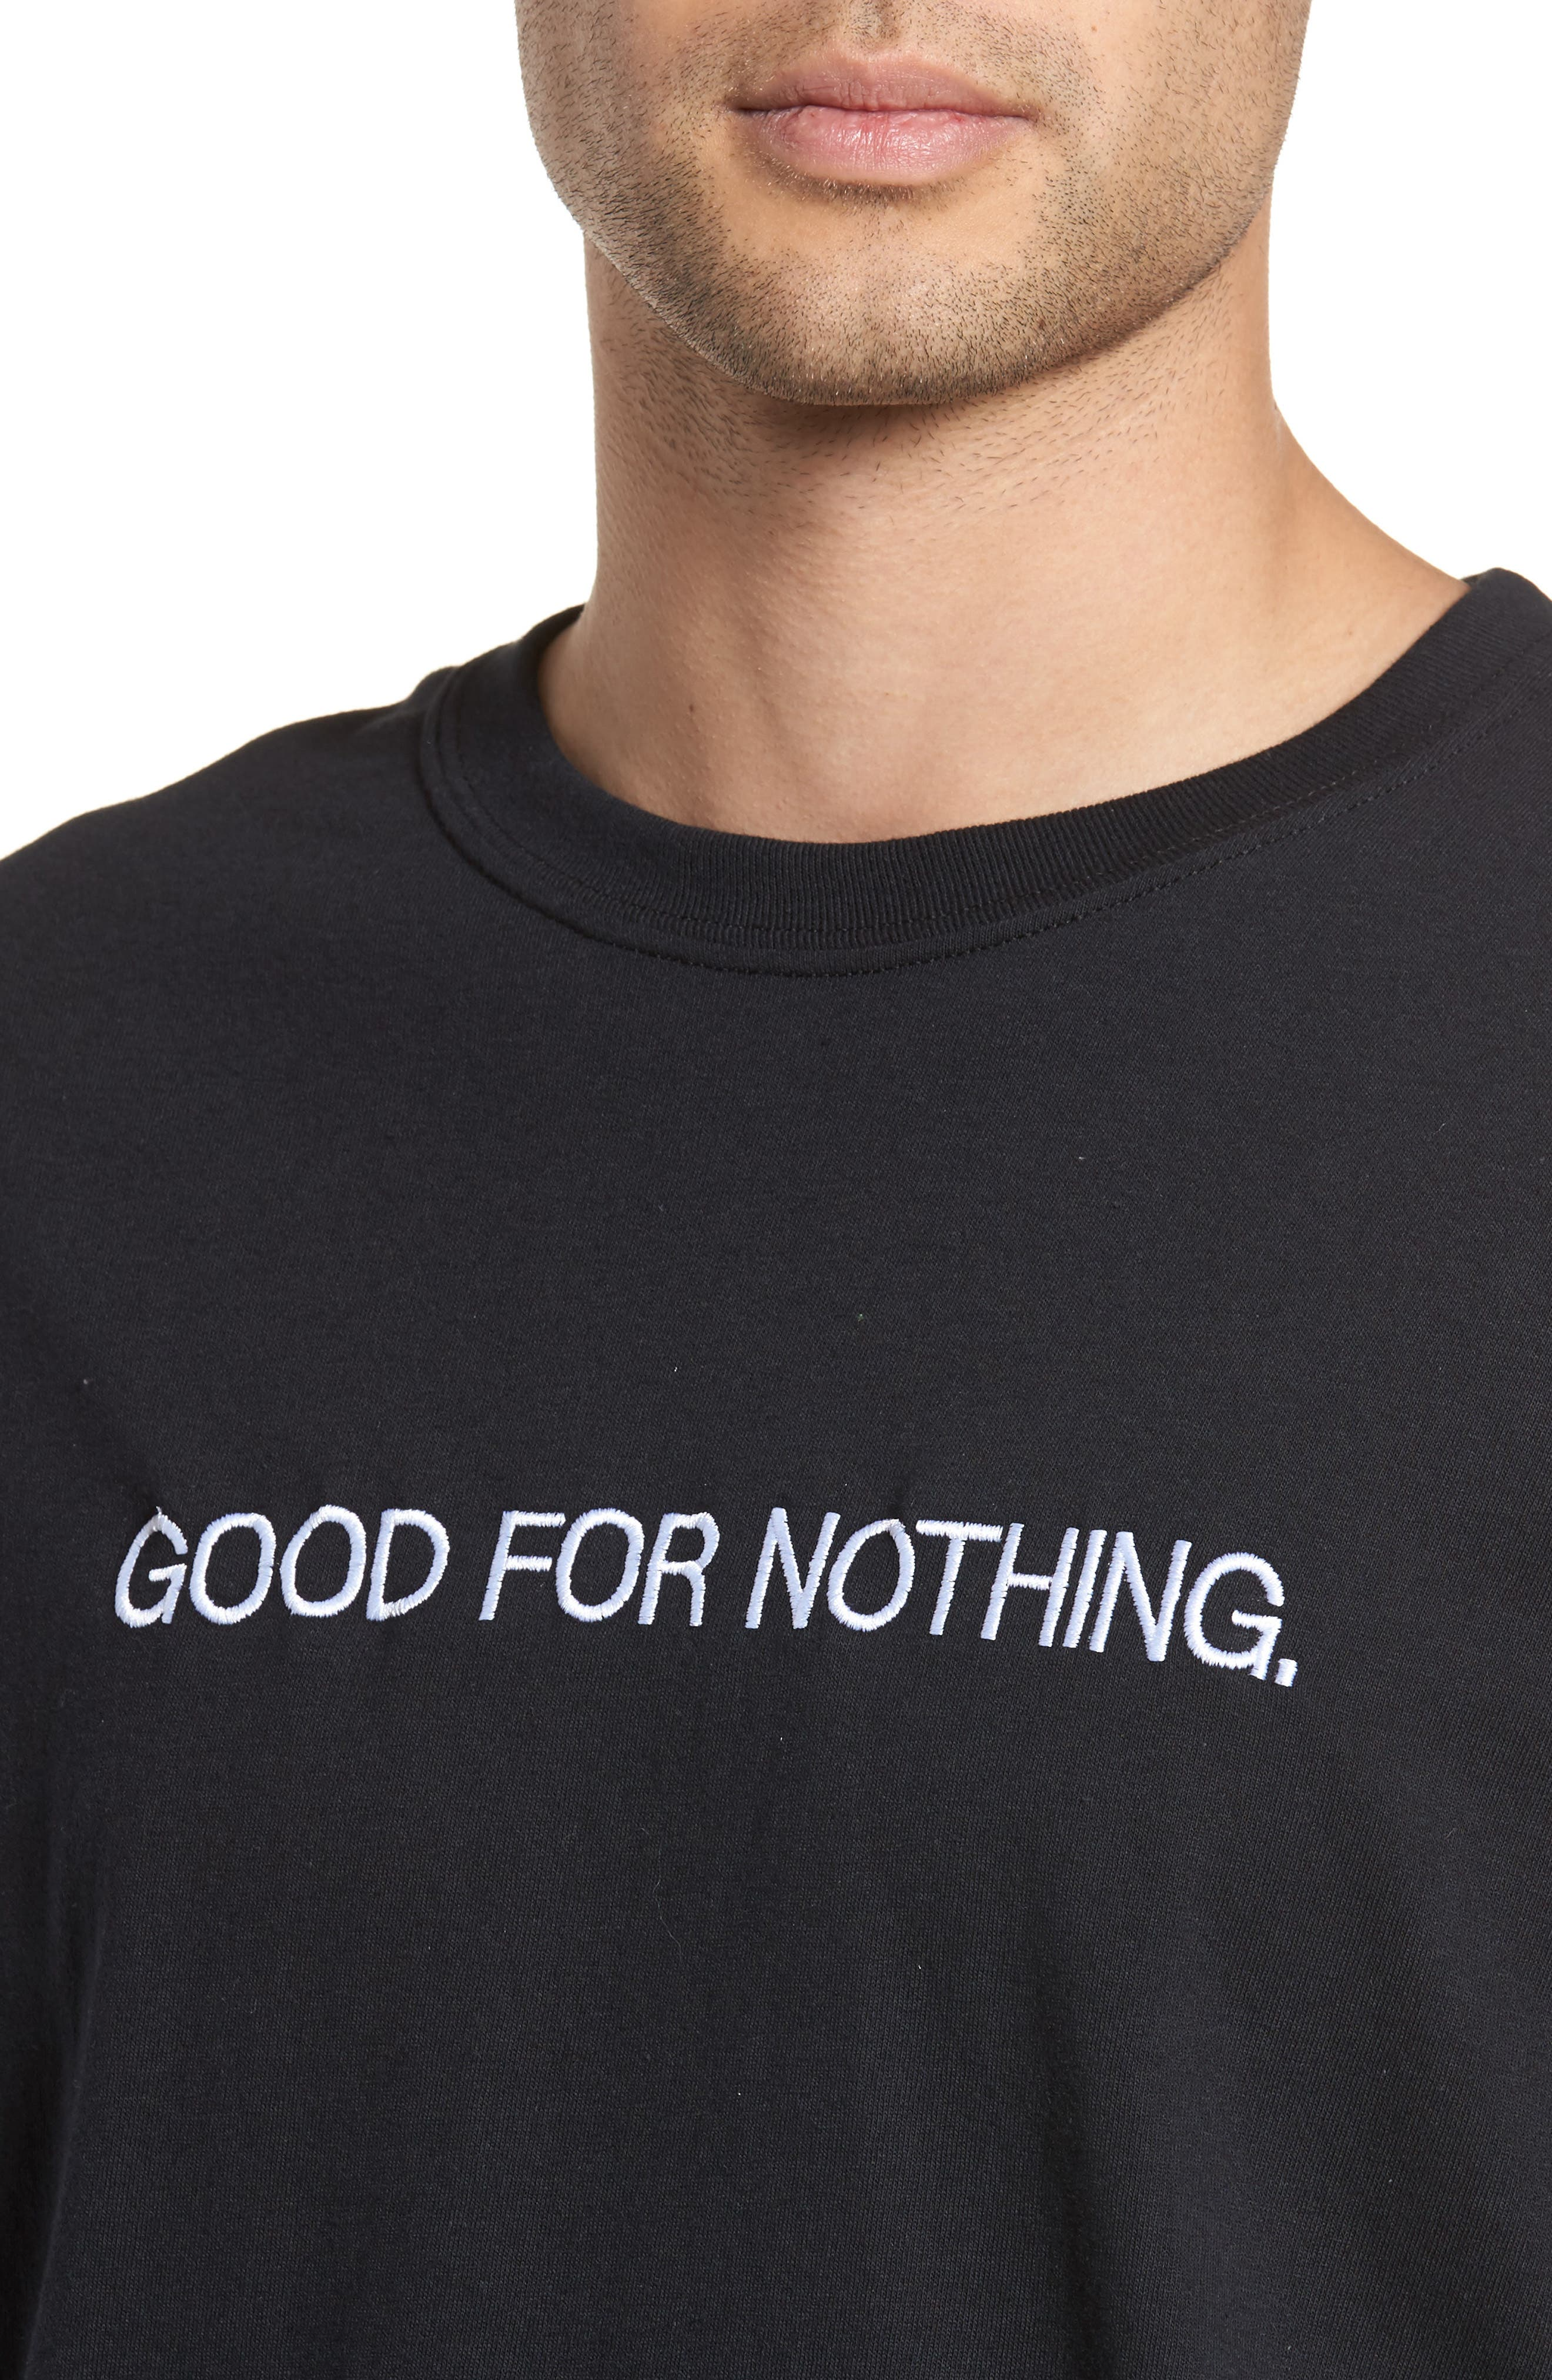 Good for Nothing Embroidered T-Shirt,                             Alternate thumbnail 4, color,                             Black Good For